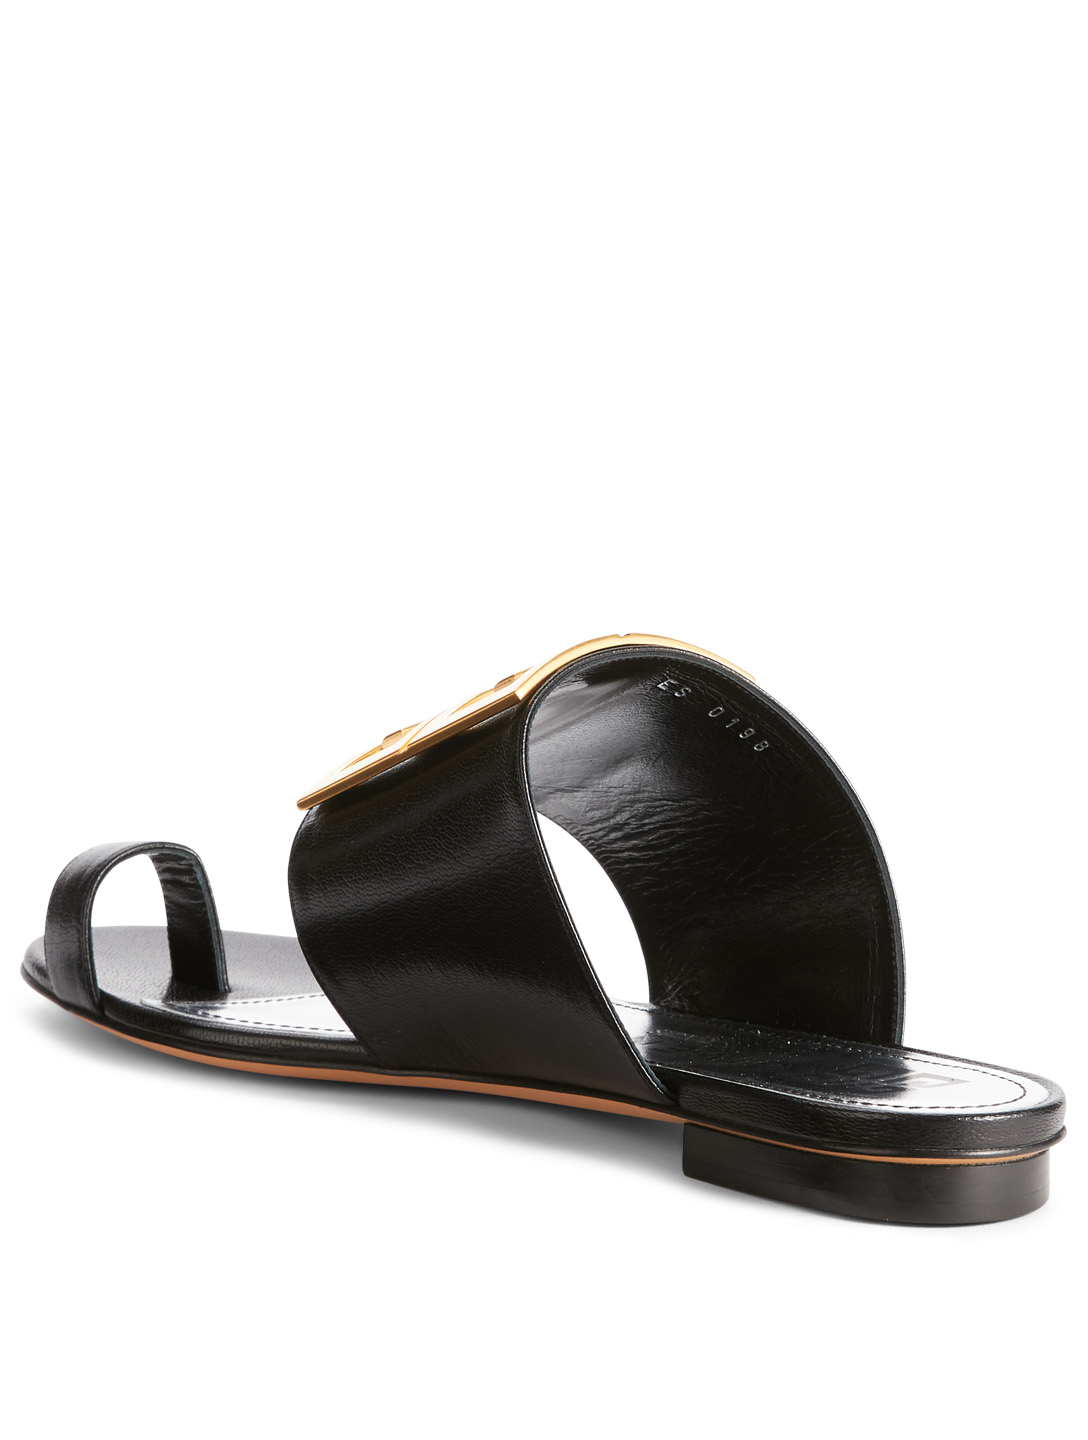 GIVENCHY 4G Leather Sandals Womens Black